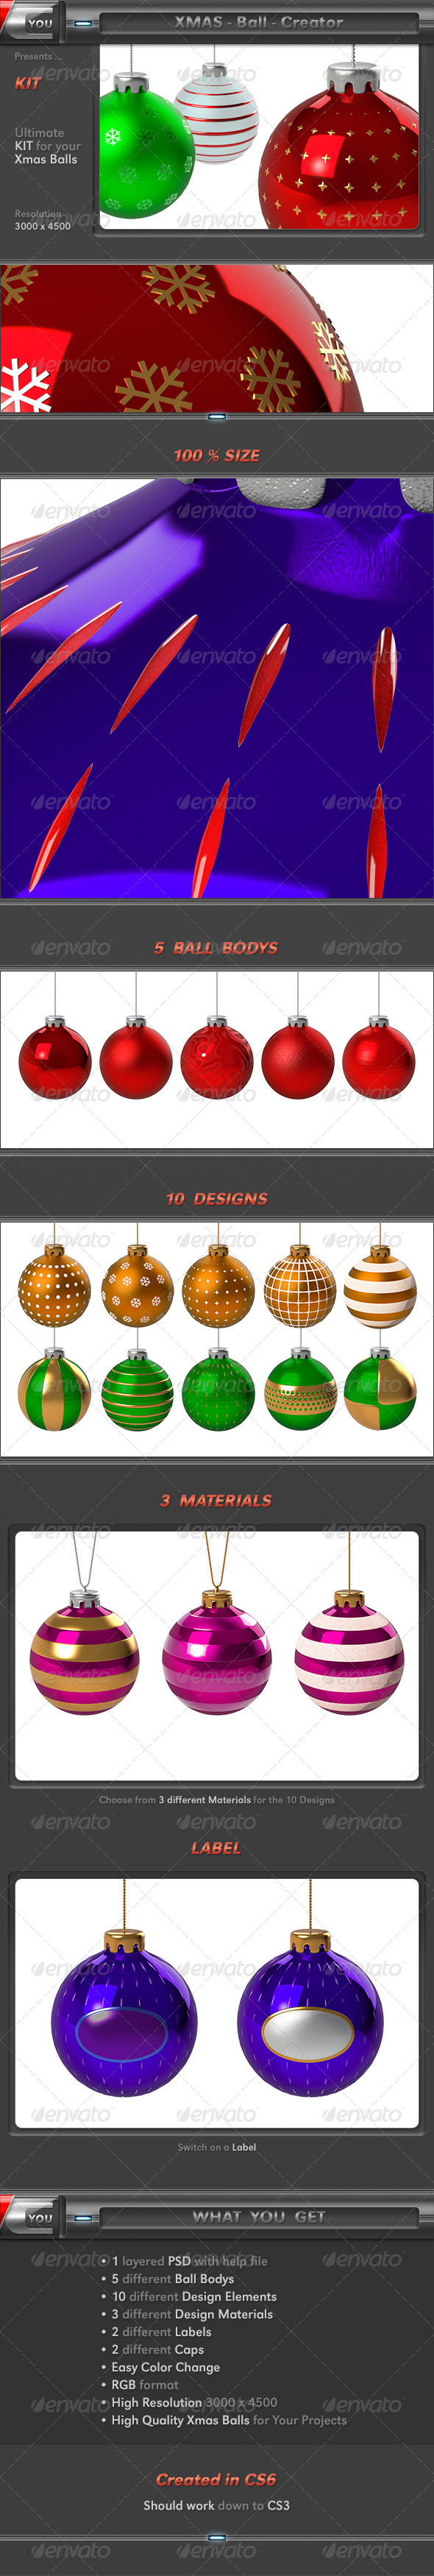 Xmas Ball Creator - Objects 3D Renders